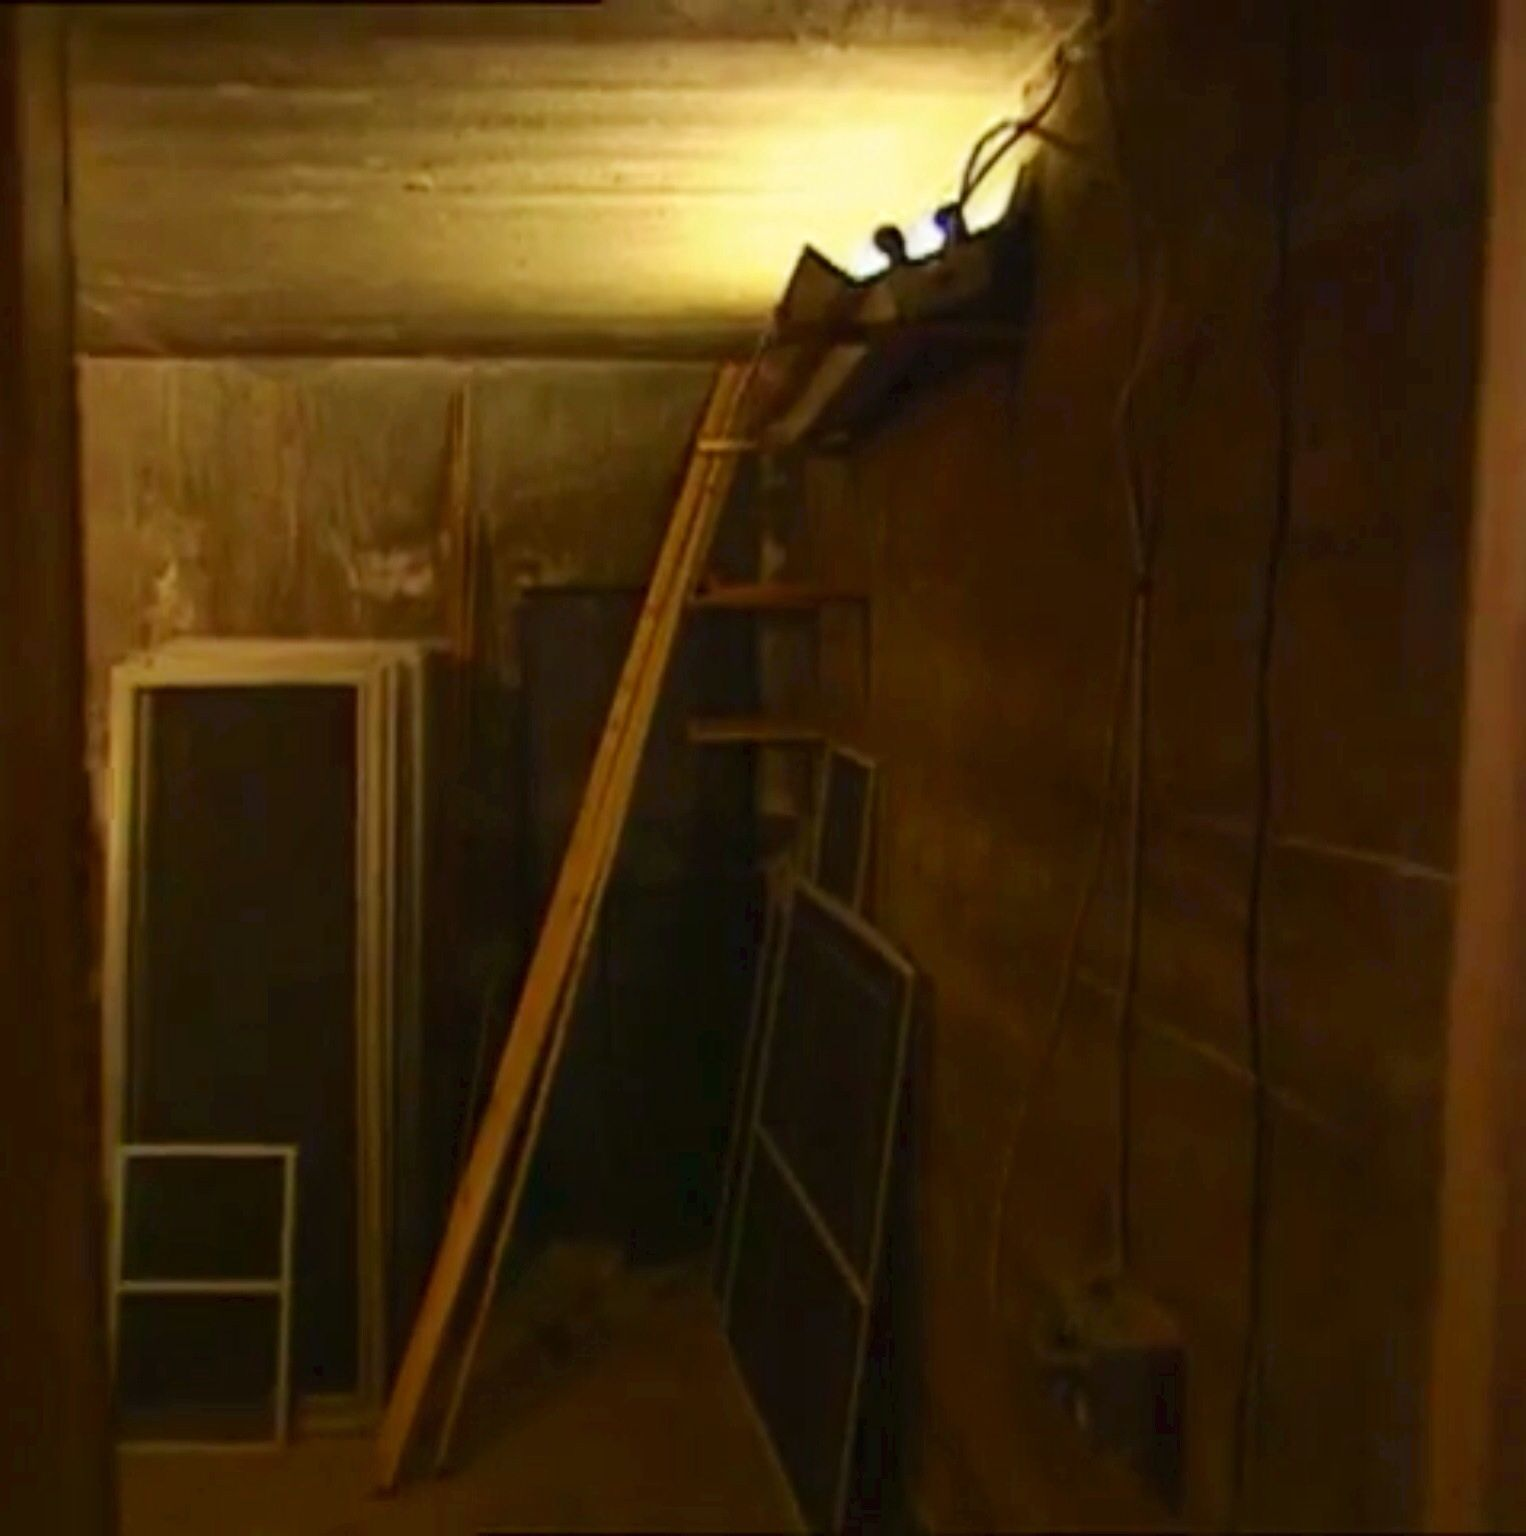 """Found In Basement: The So-called """"wine Cellar"""" In The Basement Where JonBenet"""